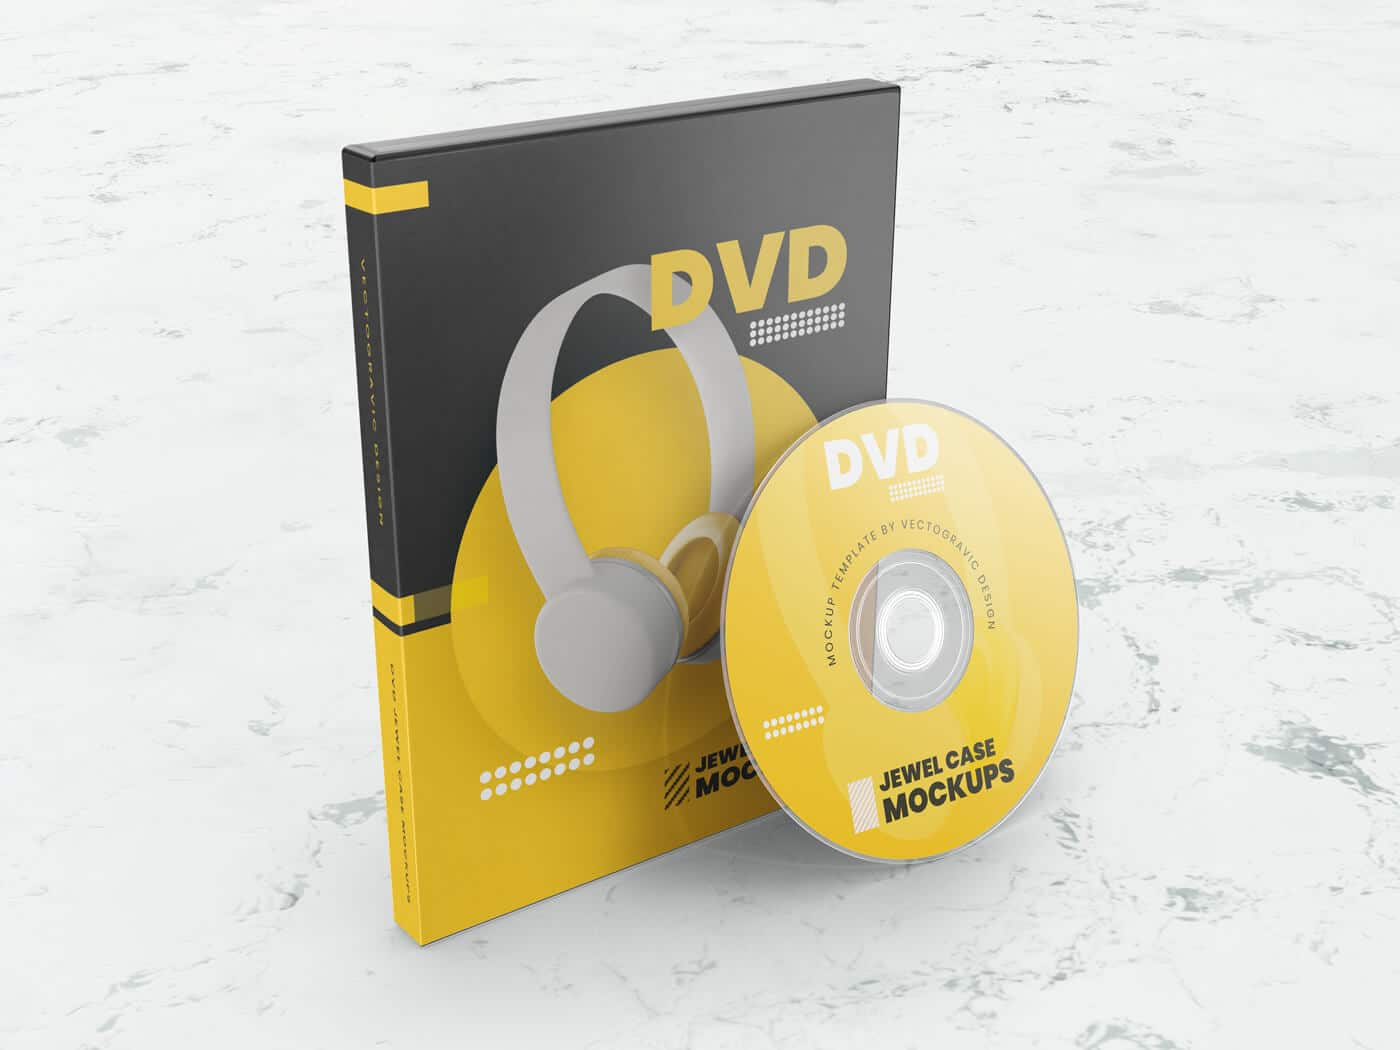 01 DVD Jewel Case Mockups